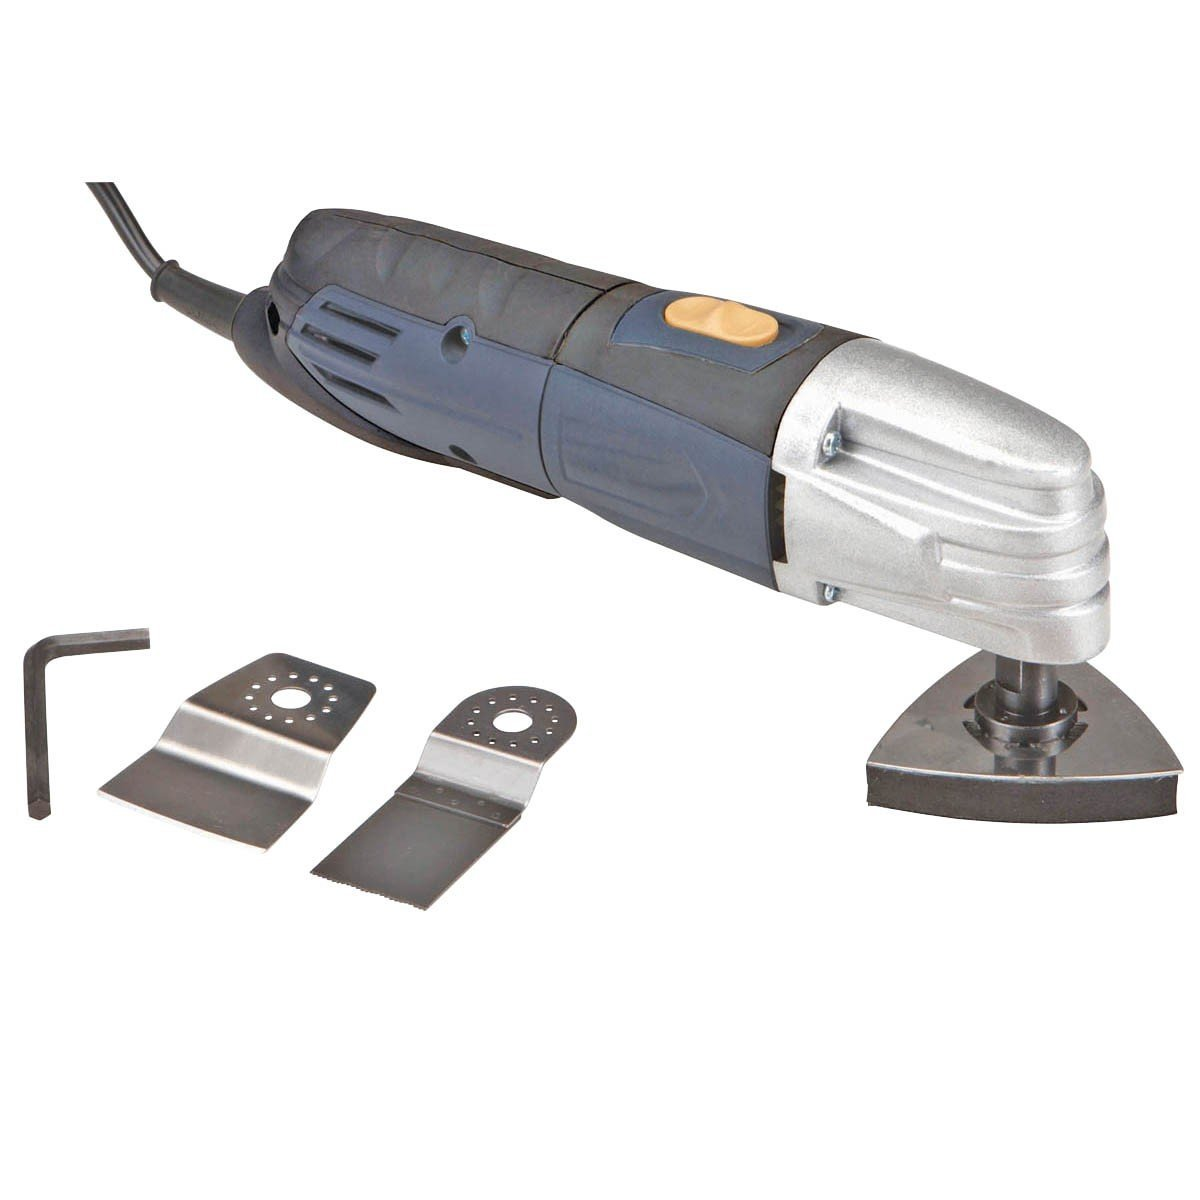 Variable Speed Oscillating Multifunction Power Tool